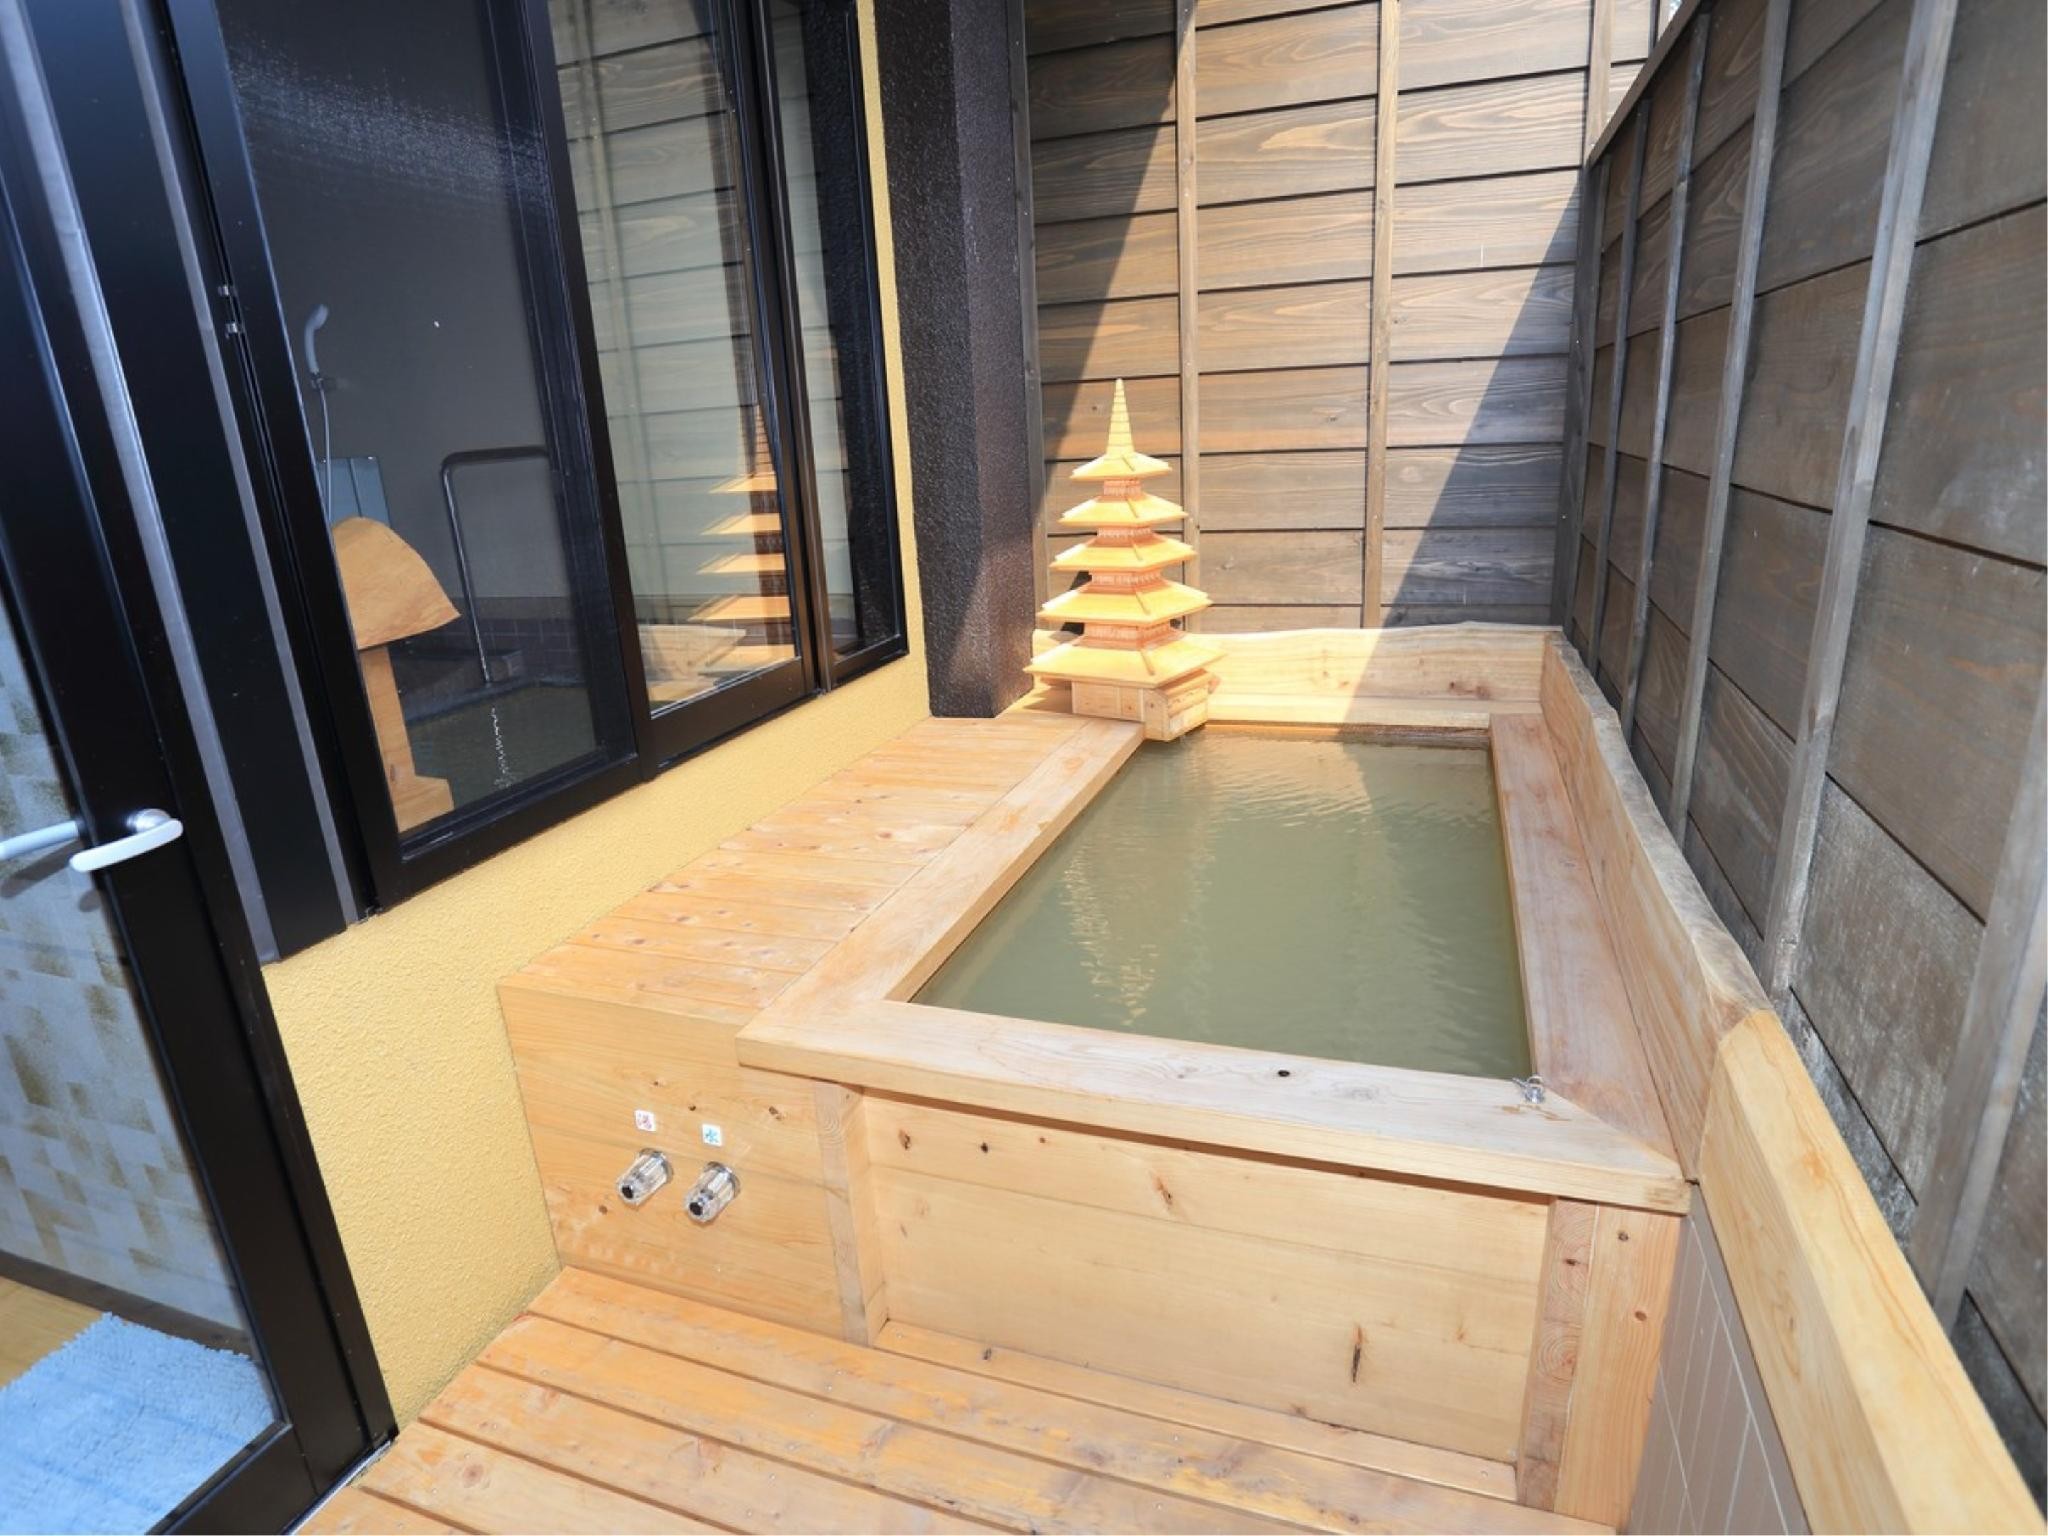 ■115・201-203■源泉掛け流し温泉・内風呂&露天風呂|32.8平米 (Twin Room with Indoor Hot Spring Bath + Open-air Bath (No. 115, 201-203))